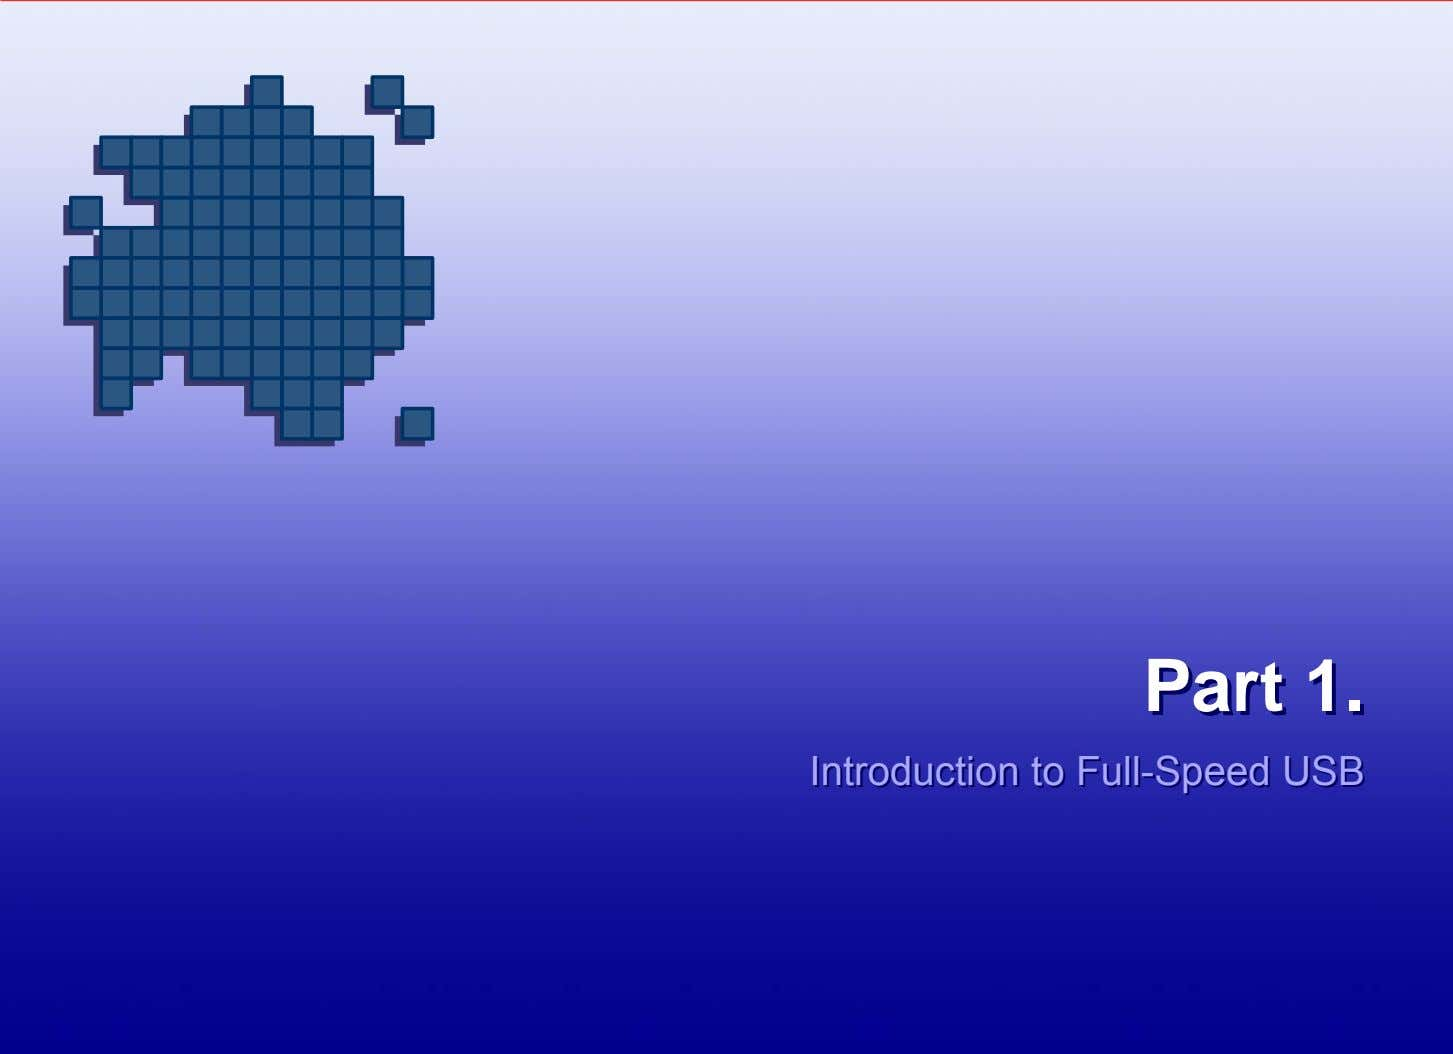 PartPart 1.1. IntroductionIntroduction toto Full-SpeedFull-Speed USBUSB